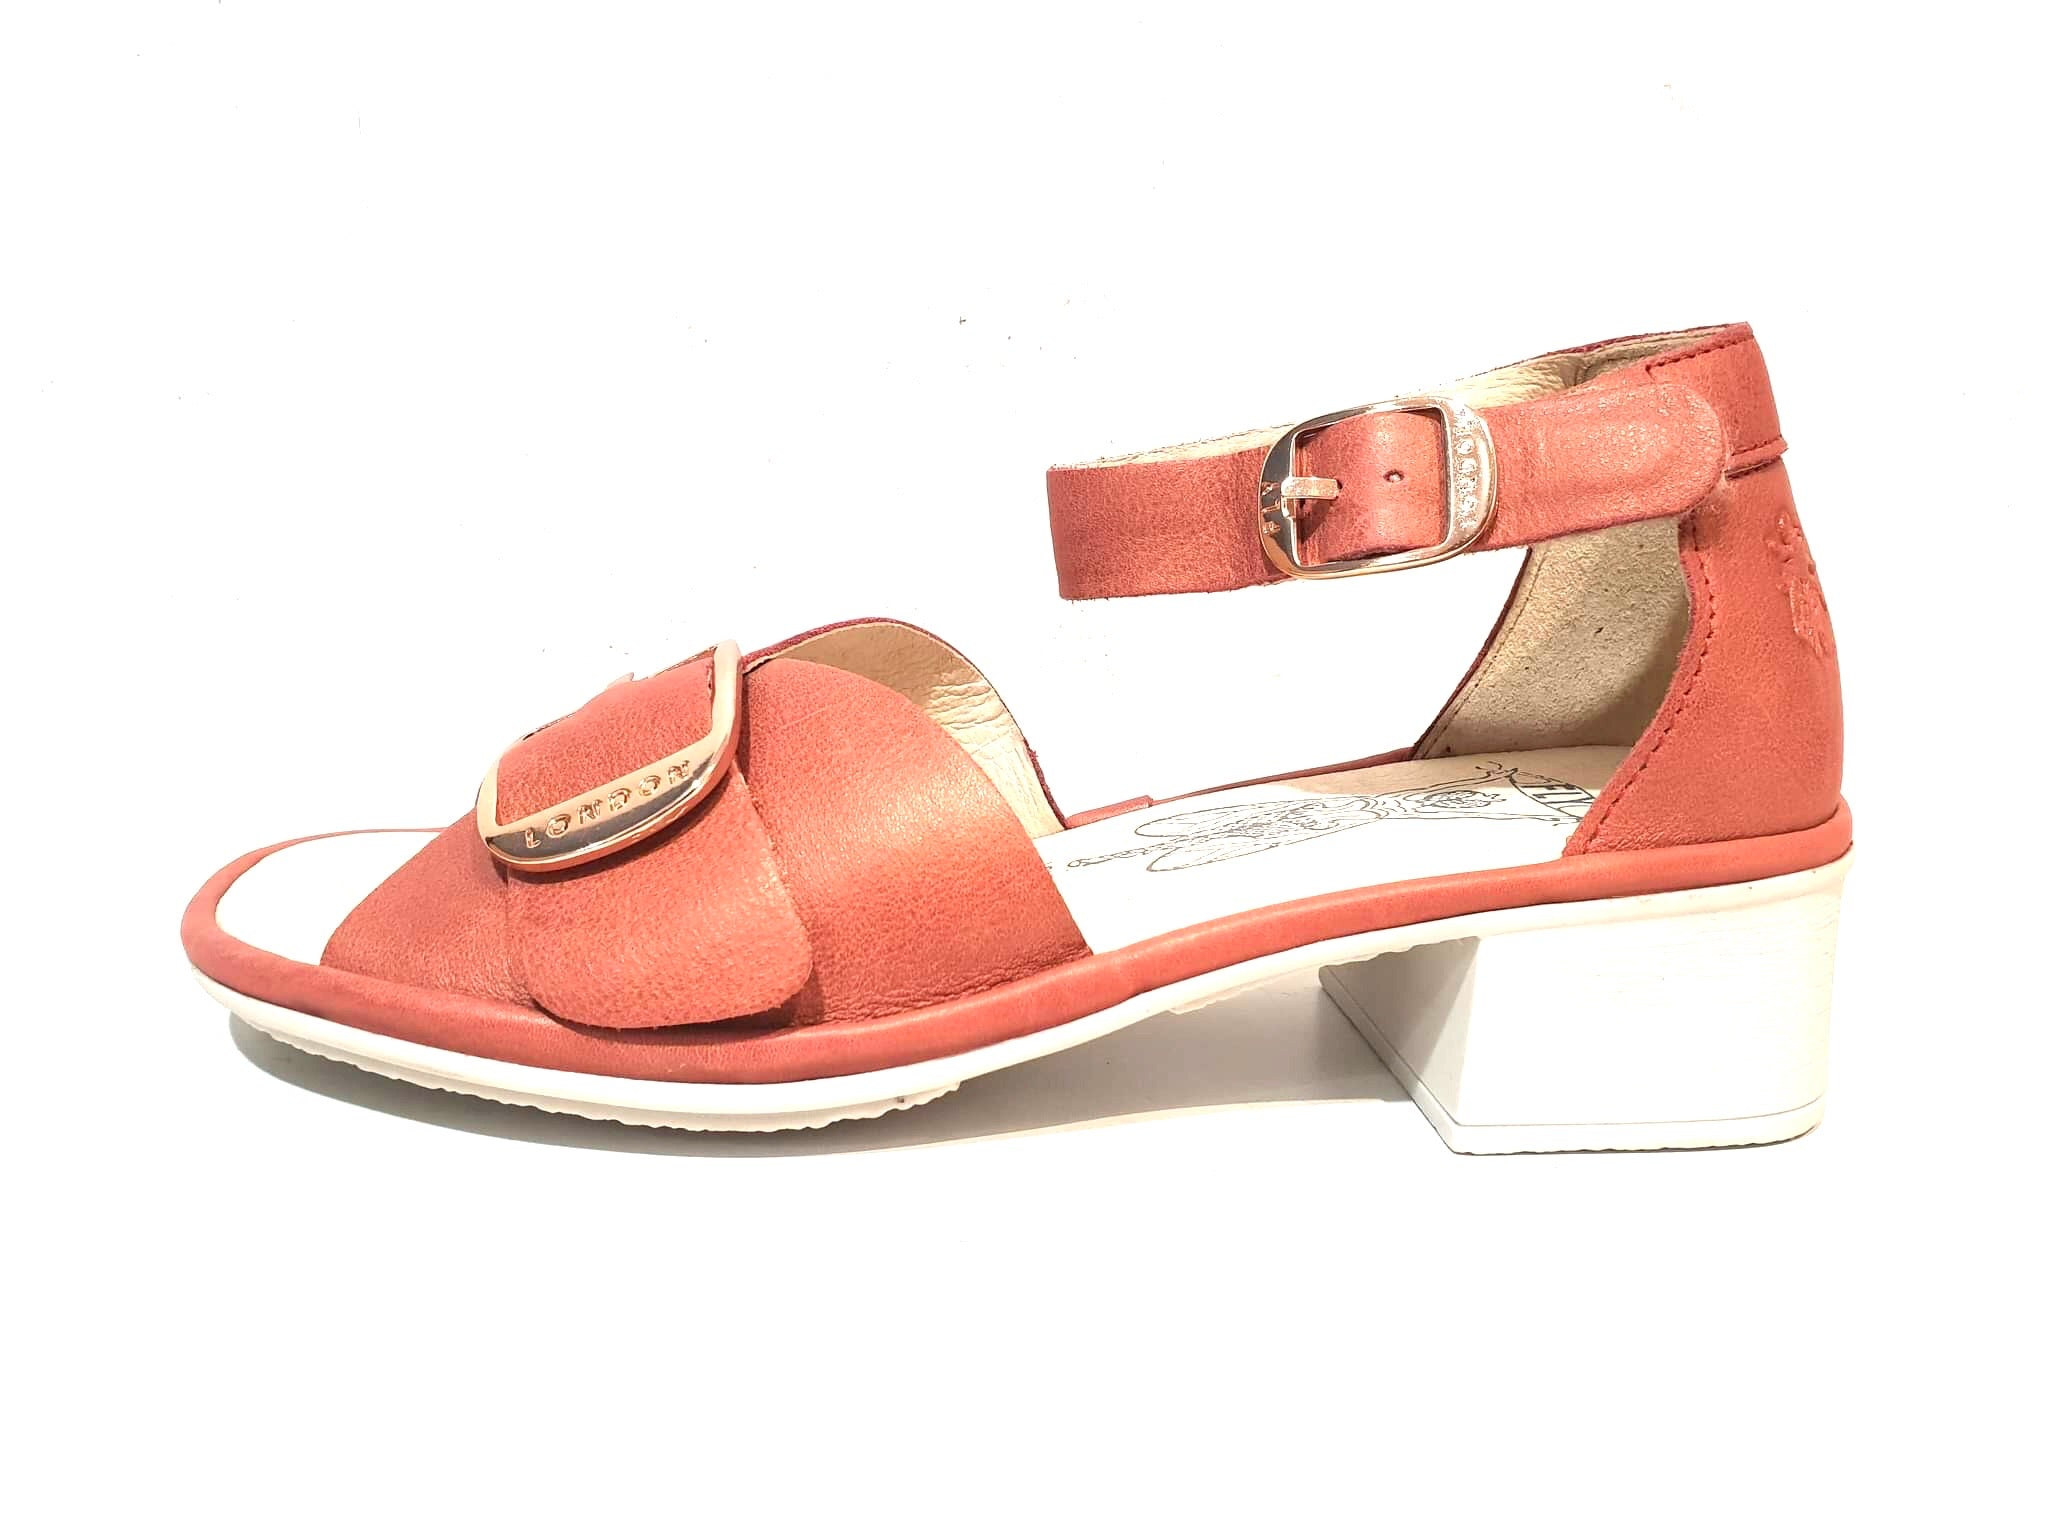 Fly London Eken018fly Janeda Raspberry Women's Leather Heels Sandals Made In Portugal